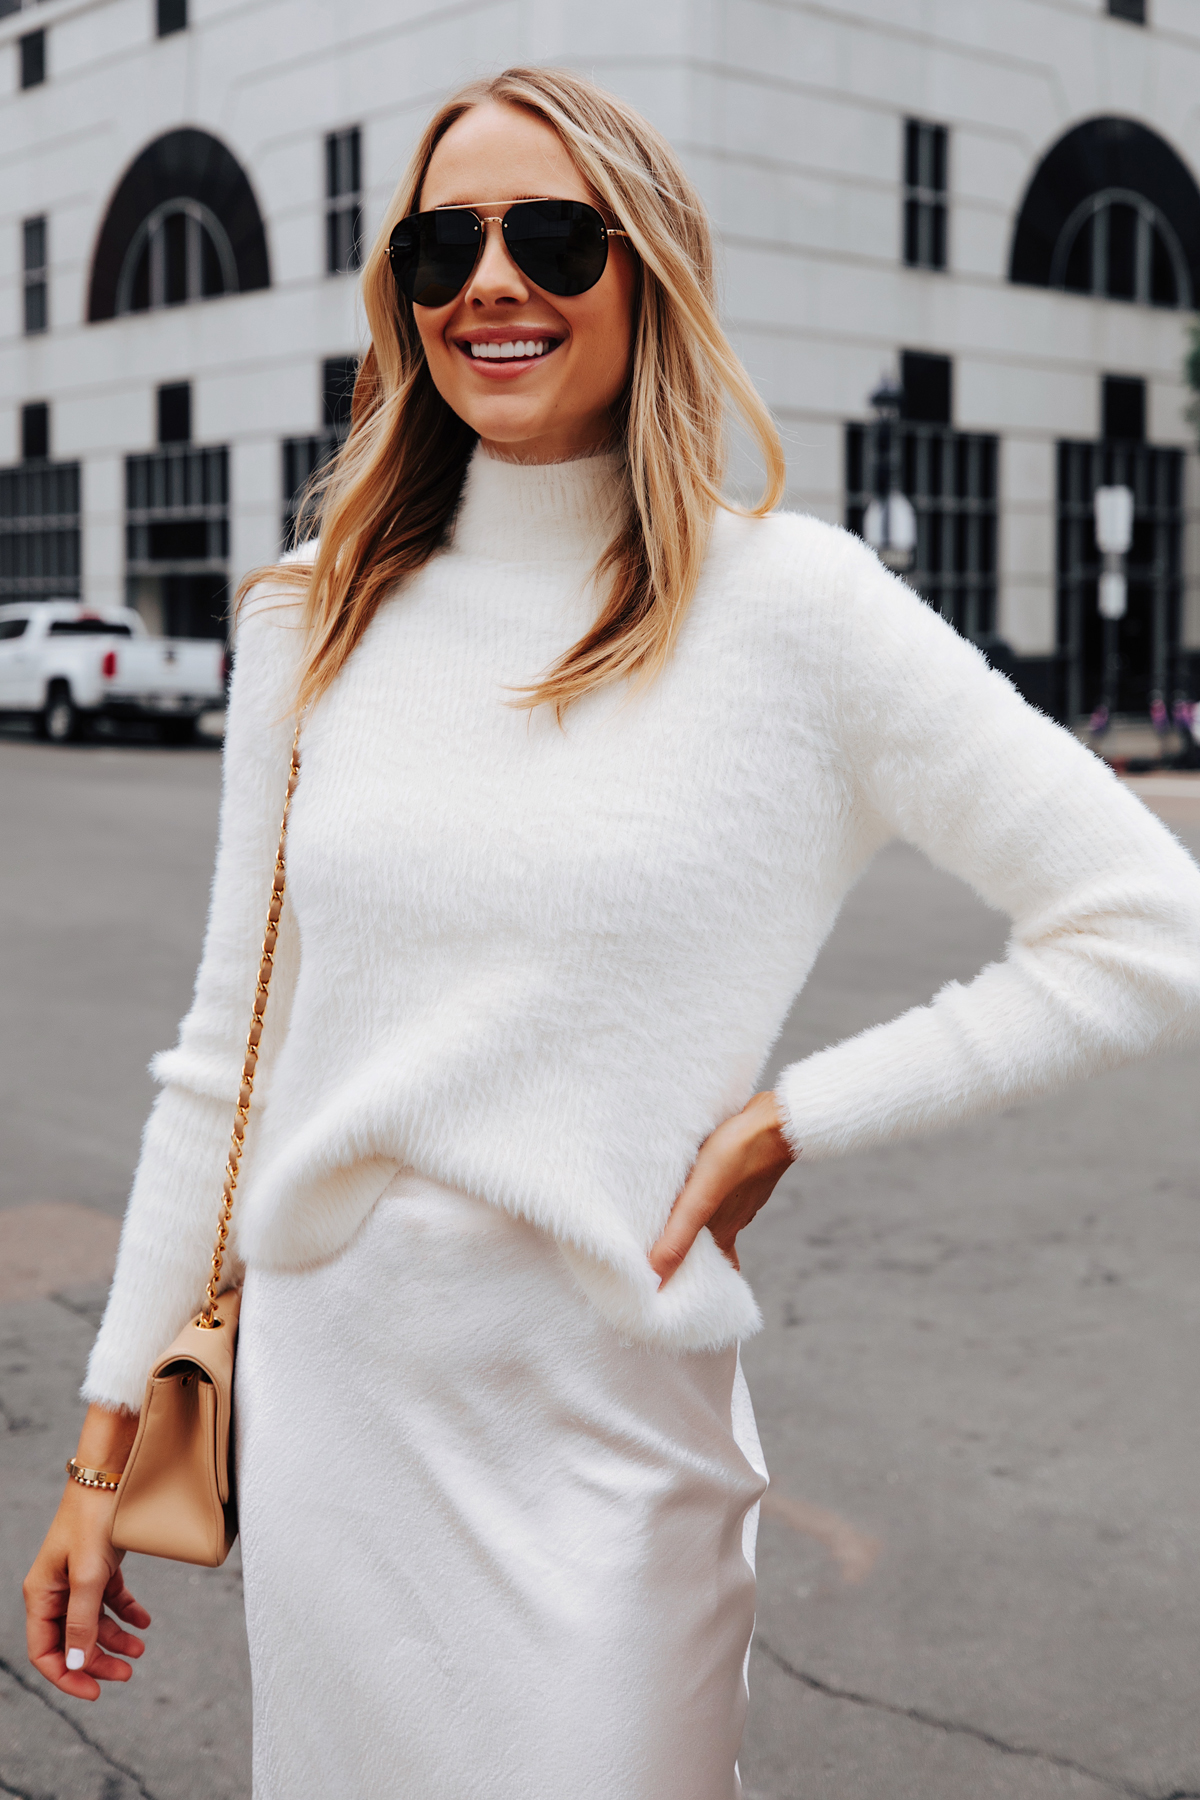 Fashion Jackson Wearing Banana Republic Fuzzy White Sweater White Skirt